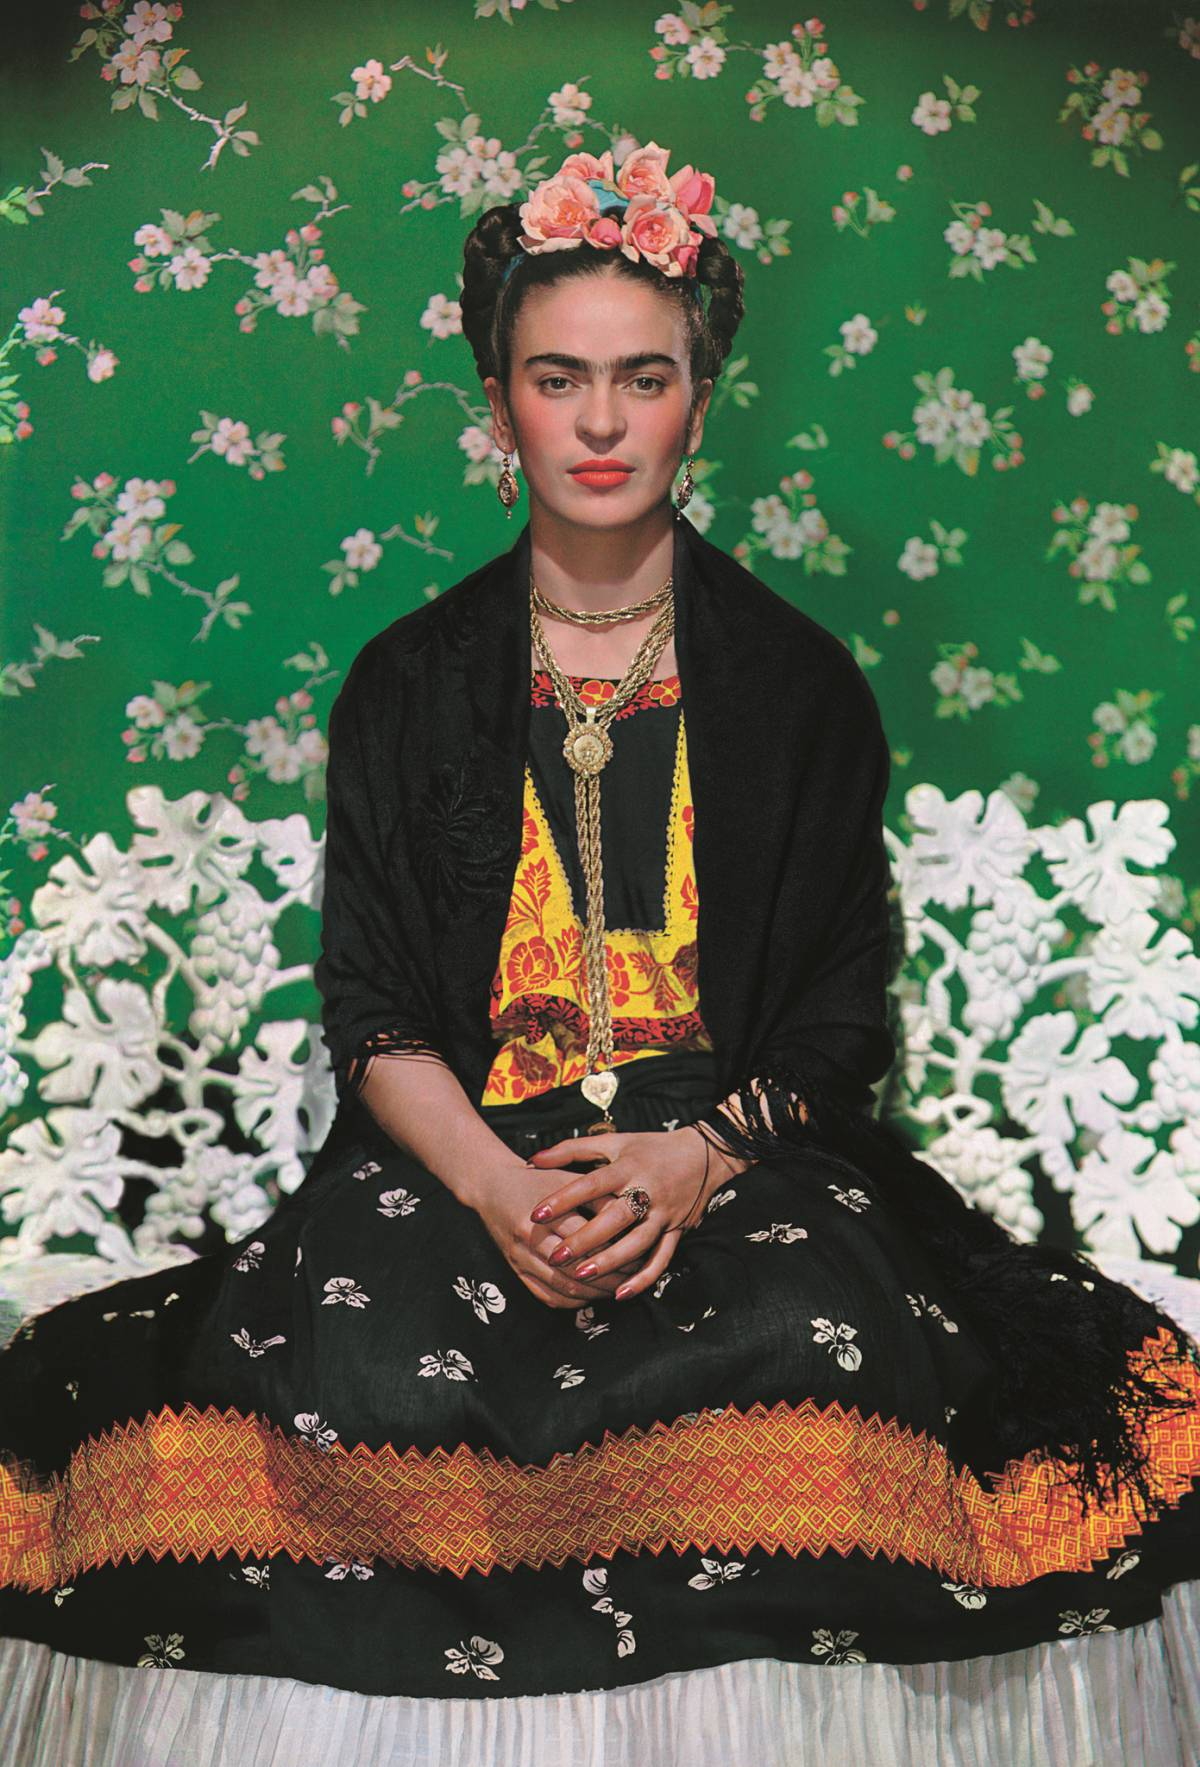 Frida Kahlo on a bench, carbon print, 1938, photo by Nickolas Muray © The Jacques and Natasha Gelman Collection of 20th Century Mexican Art and The Verge, Nickolas Muray Photo Archives